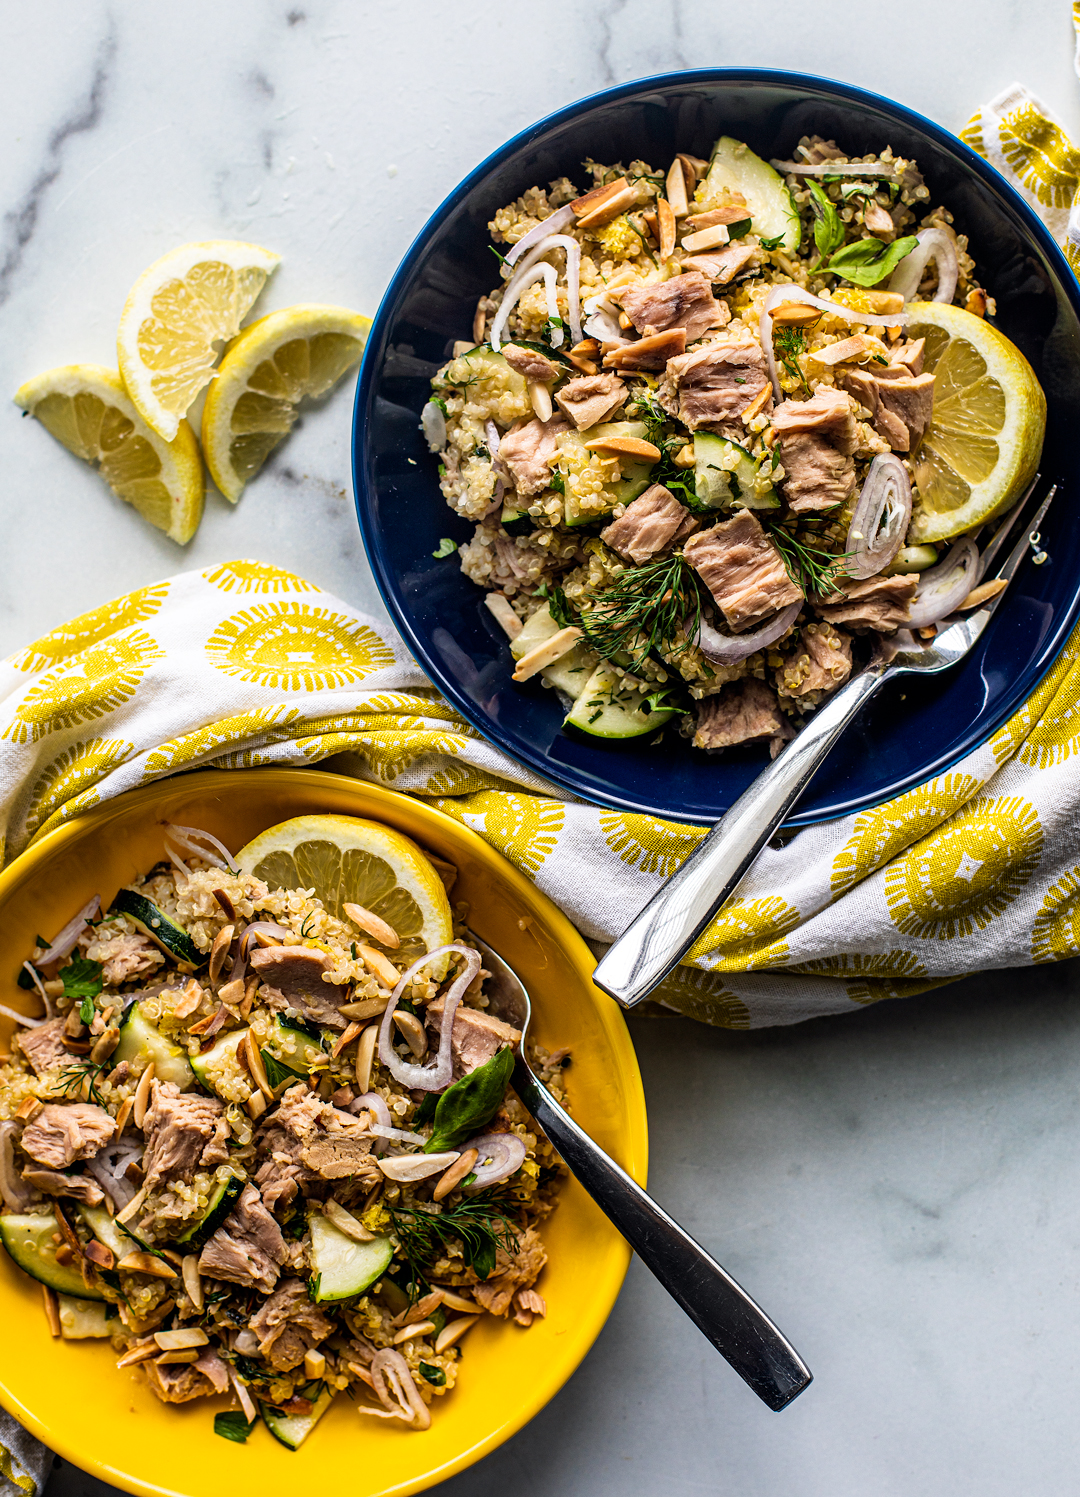 Two bowls of quinoa topped with large flakes of tuna and lemon wedges.